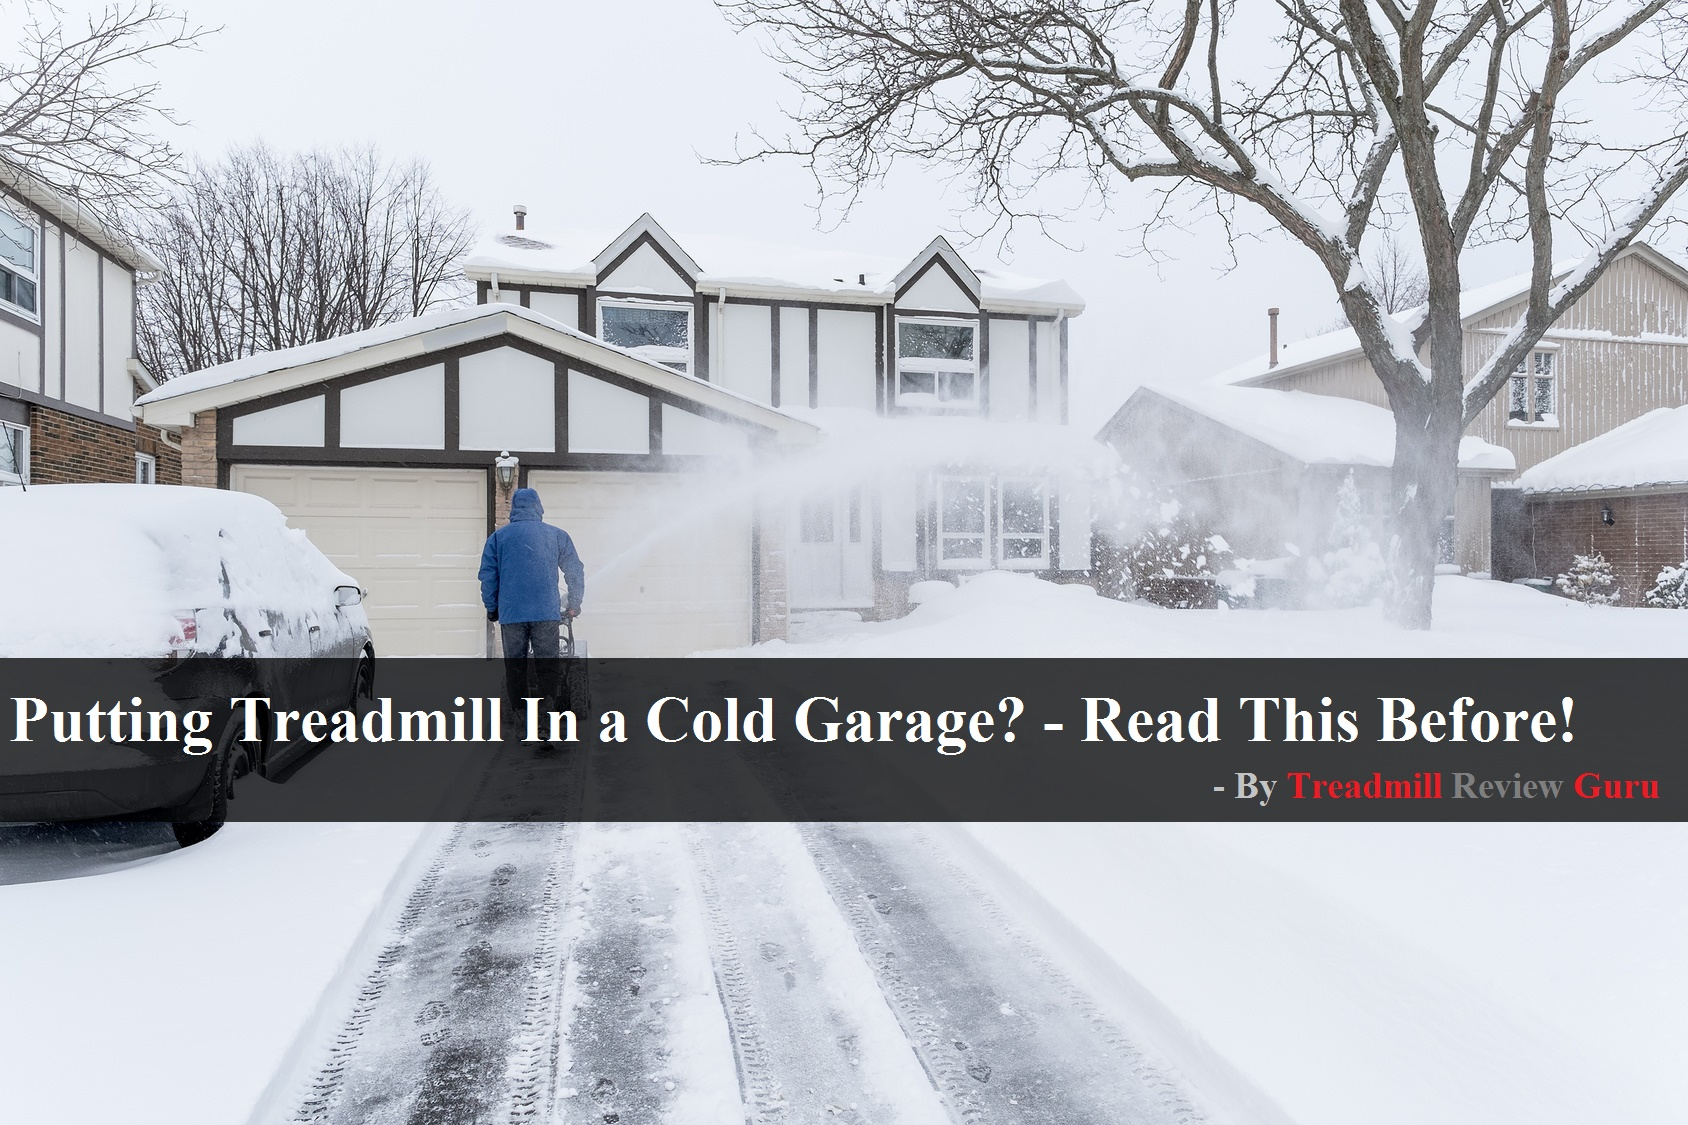 Let Us First Consider The Pros And Cons Of Storing Your Treadmill In Your  Cold Garage. Here We Have Also Outlined Some Short Tips, Quick Fixes, Or  Solutions ...